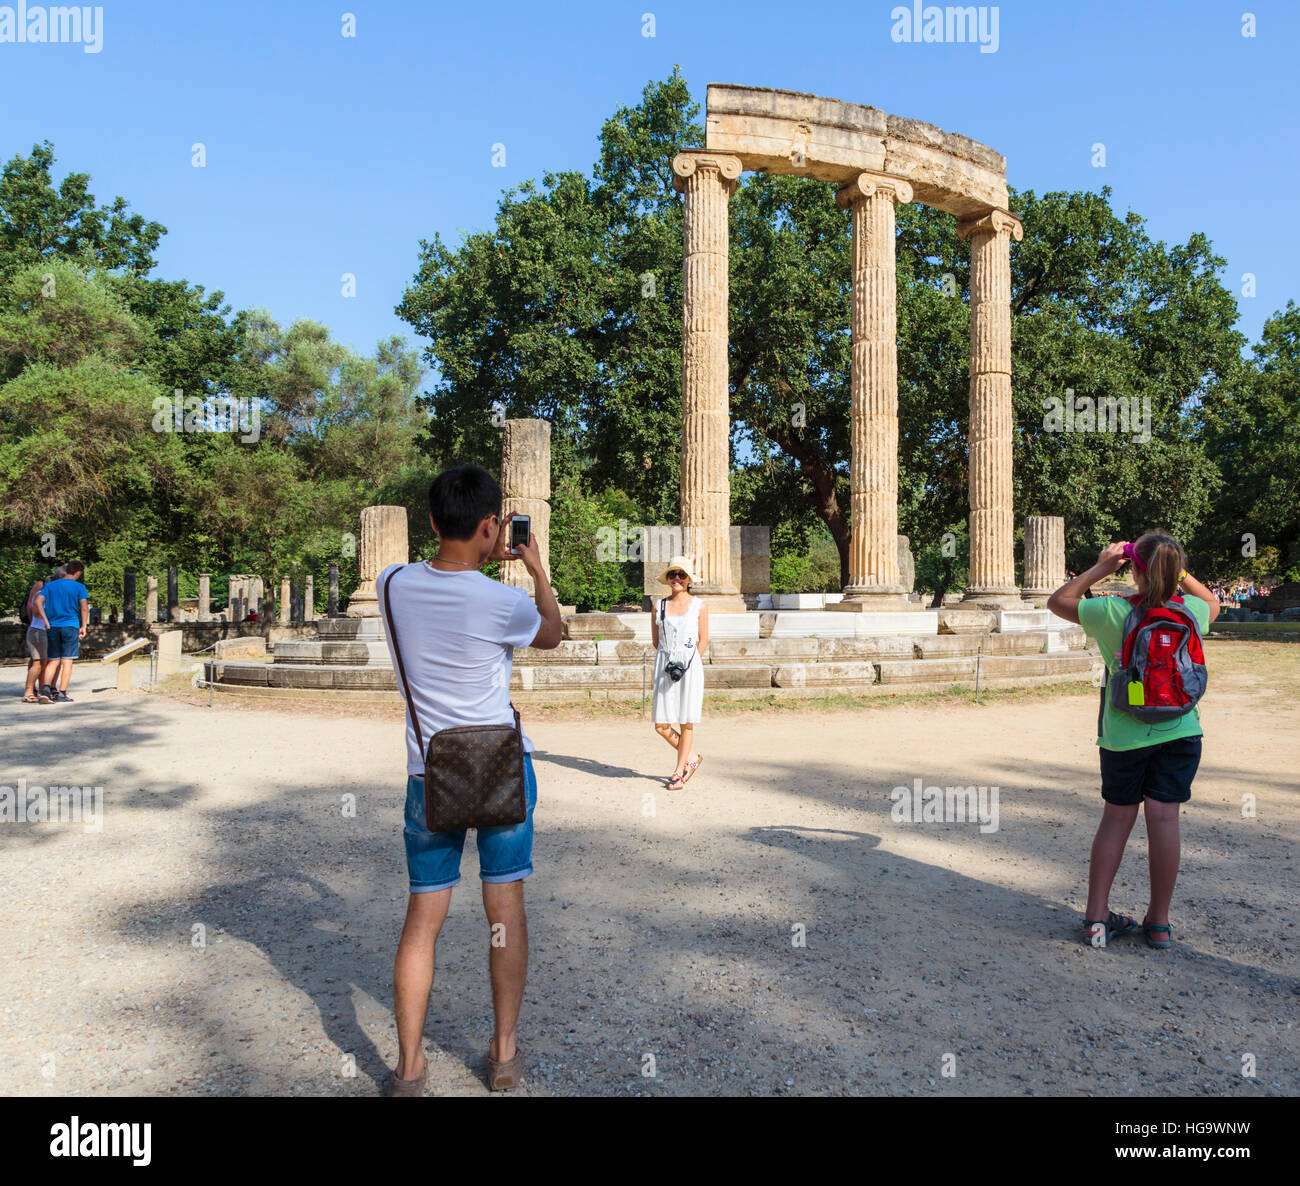 Olympia, Peloponnese, Greece.  Ancient Olympia.  The Philippeion, 4th century BC.  Remains of a circular building - Stock Image